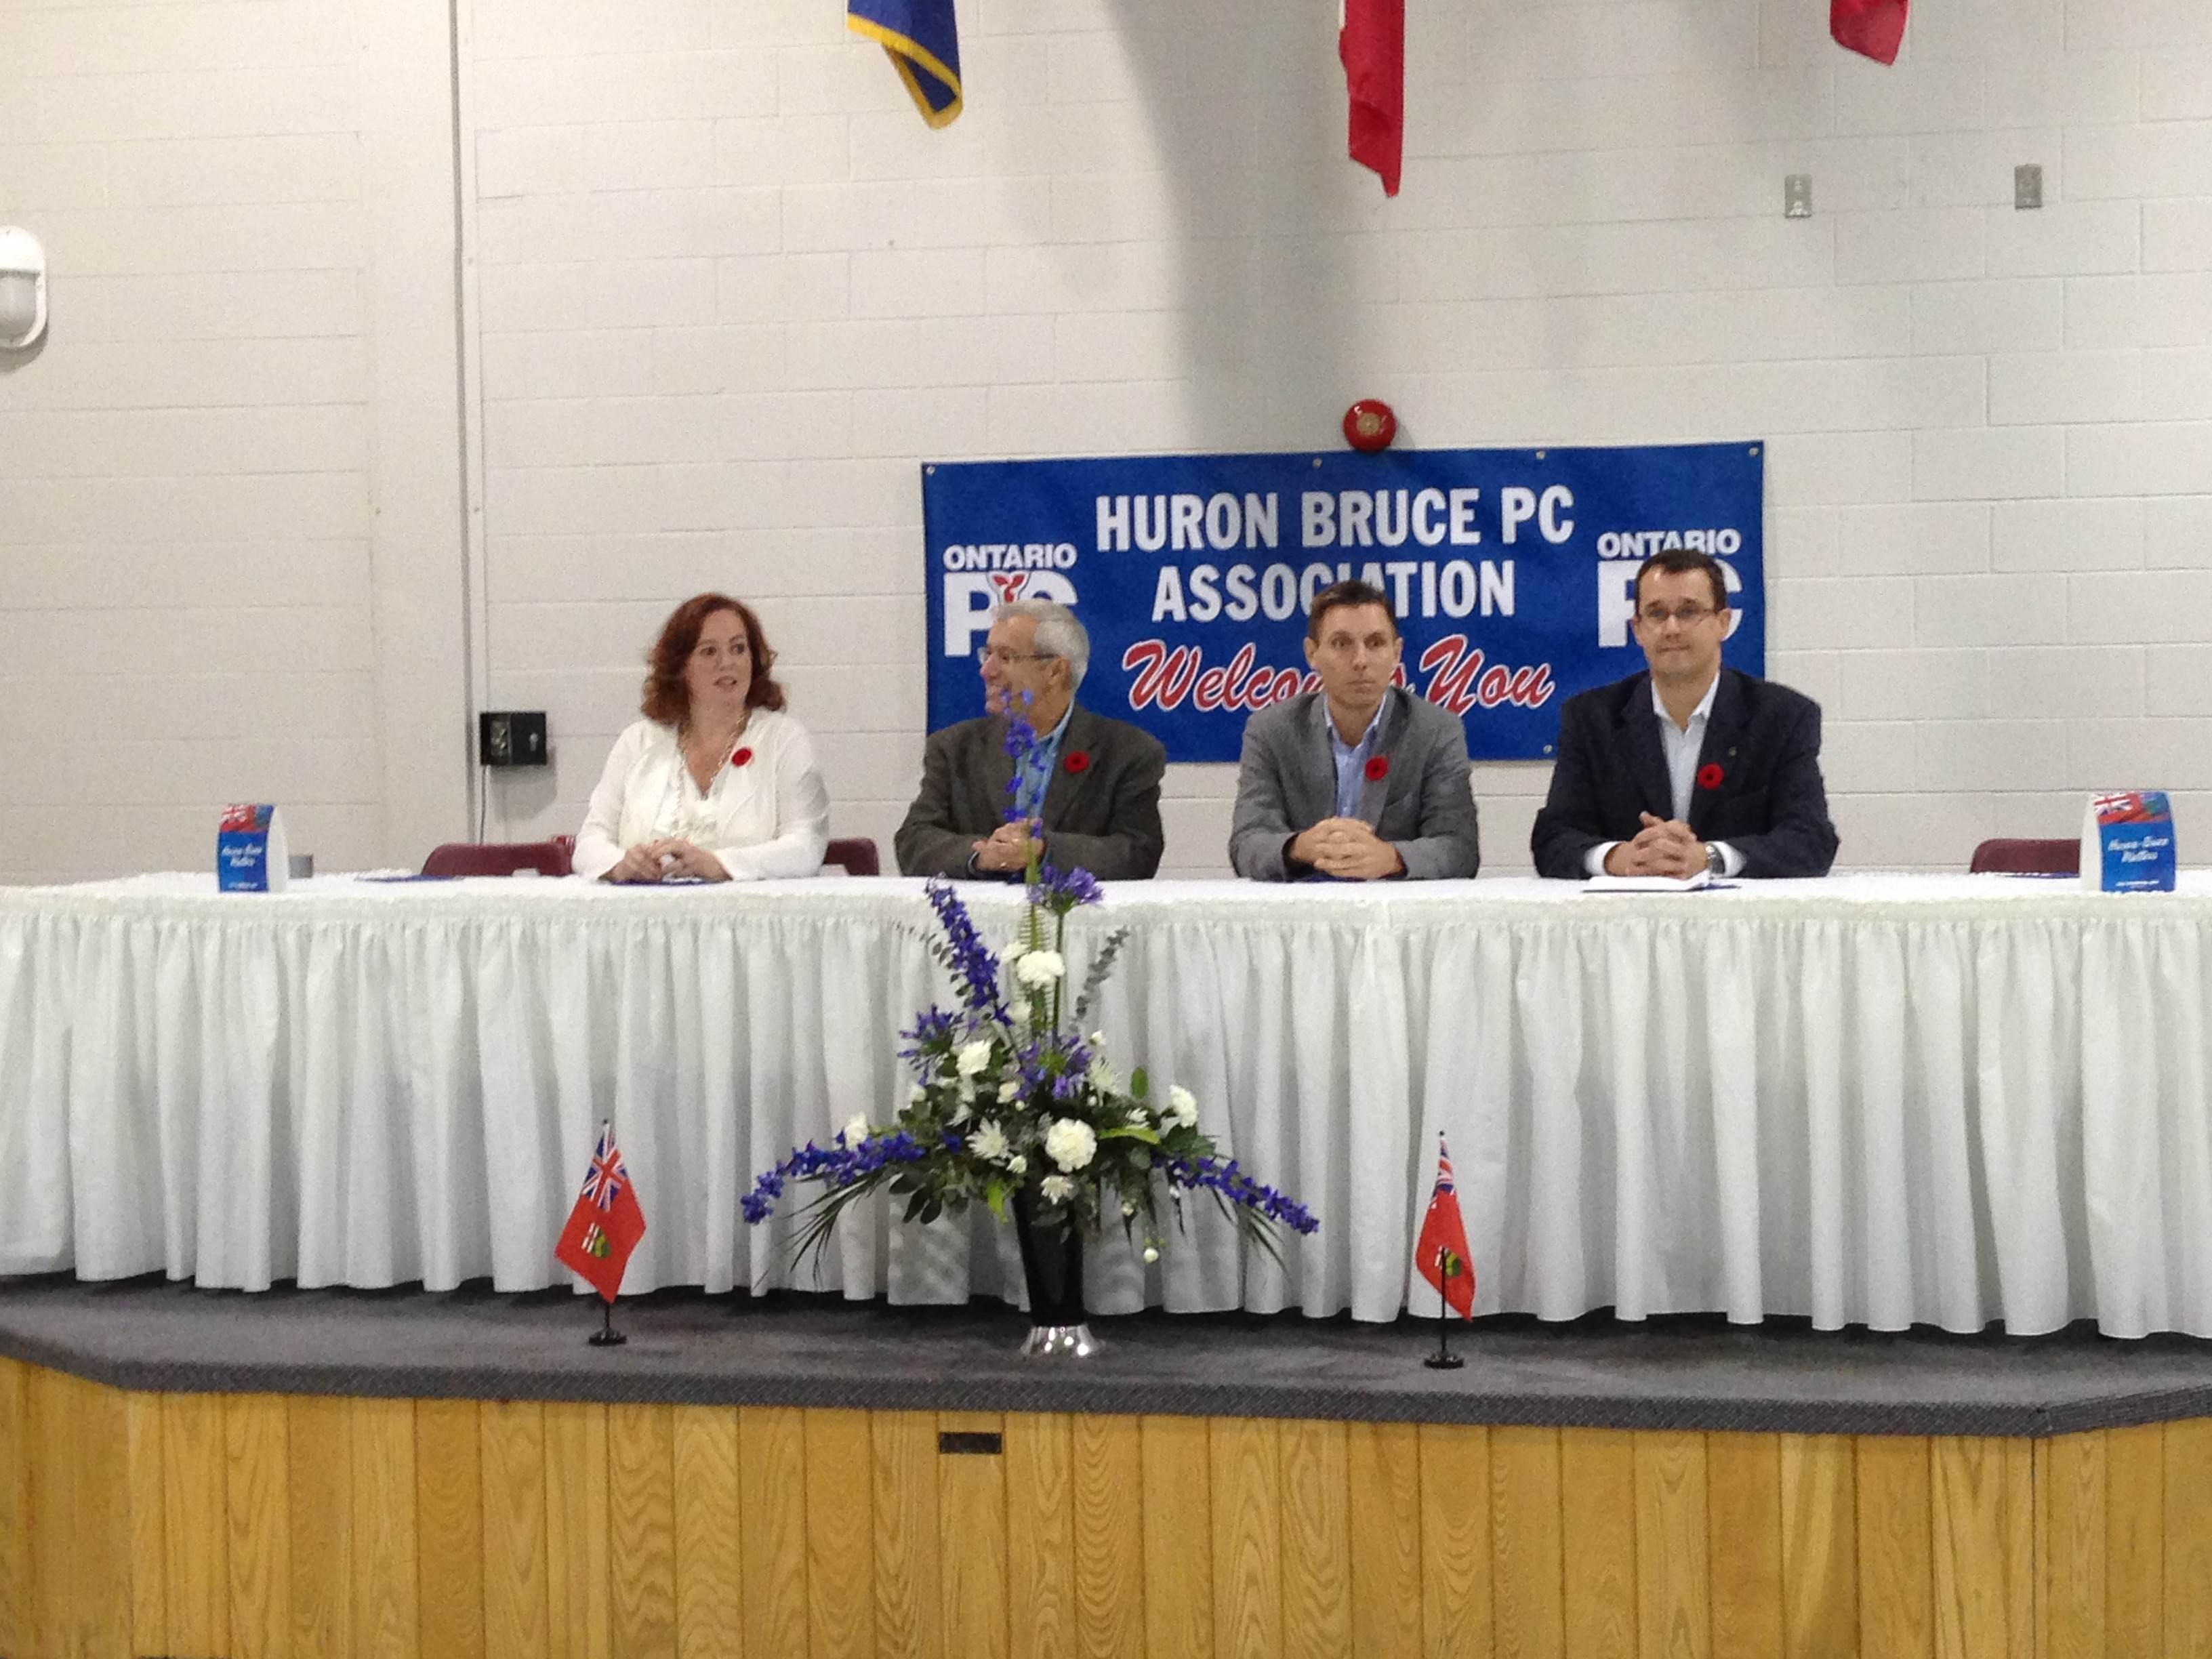 From L to R: Lisa MacLeod, Vic Fedeli, Patrick Brown and Monte McNaughton on hand in Wingham vying for leadership of the Ontario PC Party.